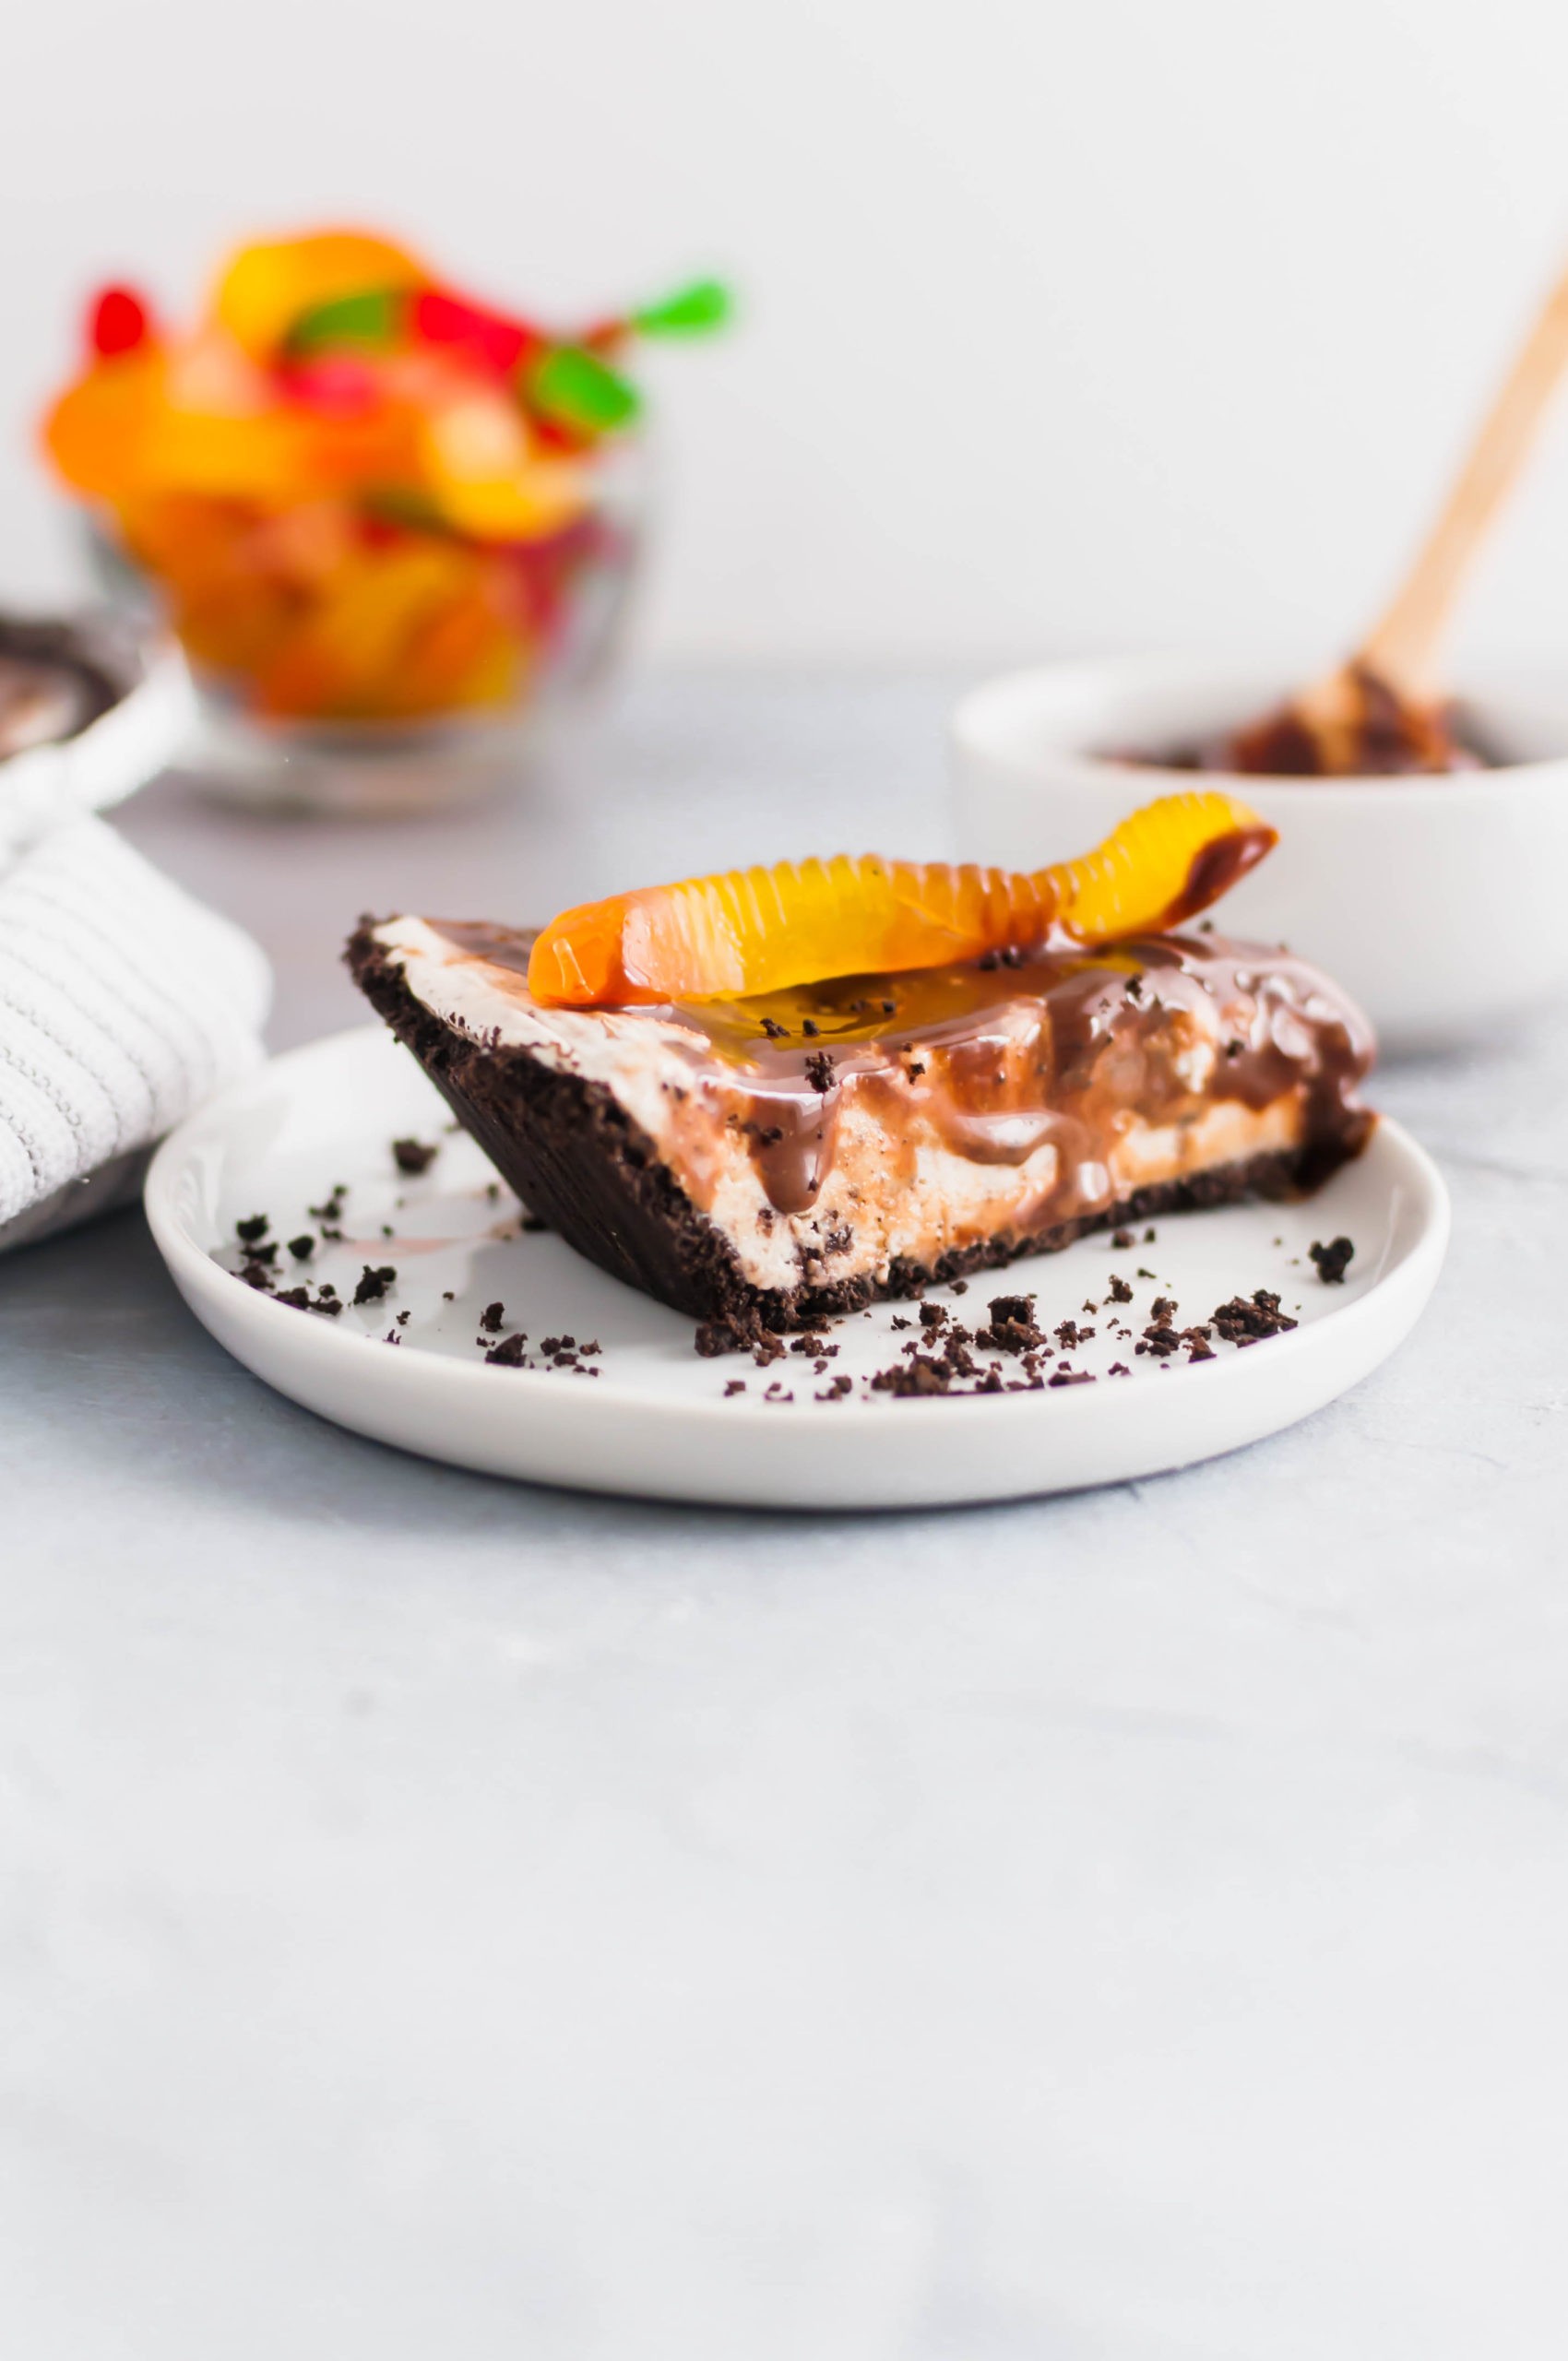 Dirt and Worms Ice Cream Pie is a fun way to treat the kids on these hot summer days. Cookies and cream ice cream, hot fudge and gummy worms with an Oreo crust make up this super fun dessert.